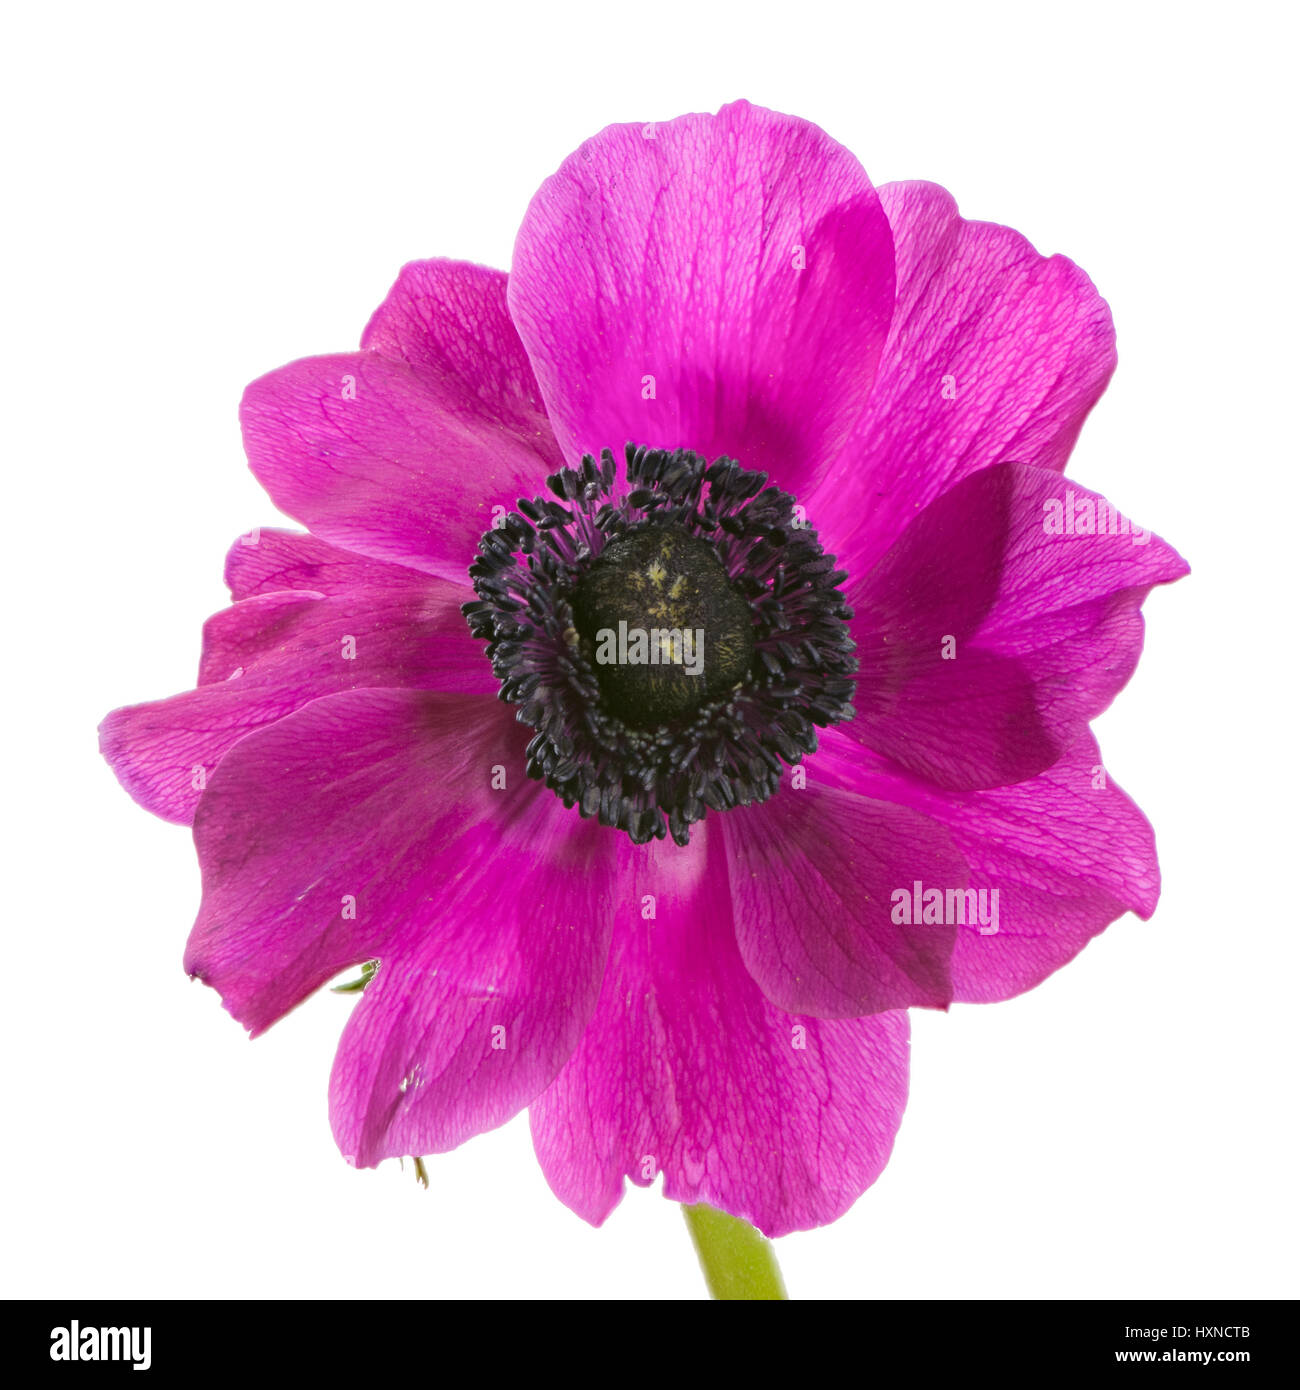 Macro of an isolated purple anemone flower blossom Stock Photo